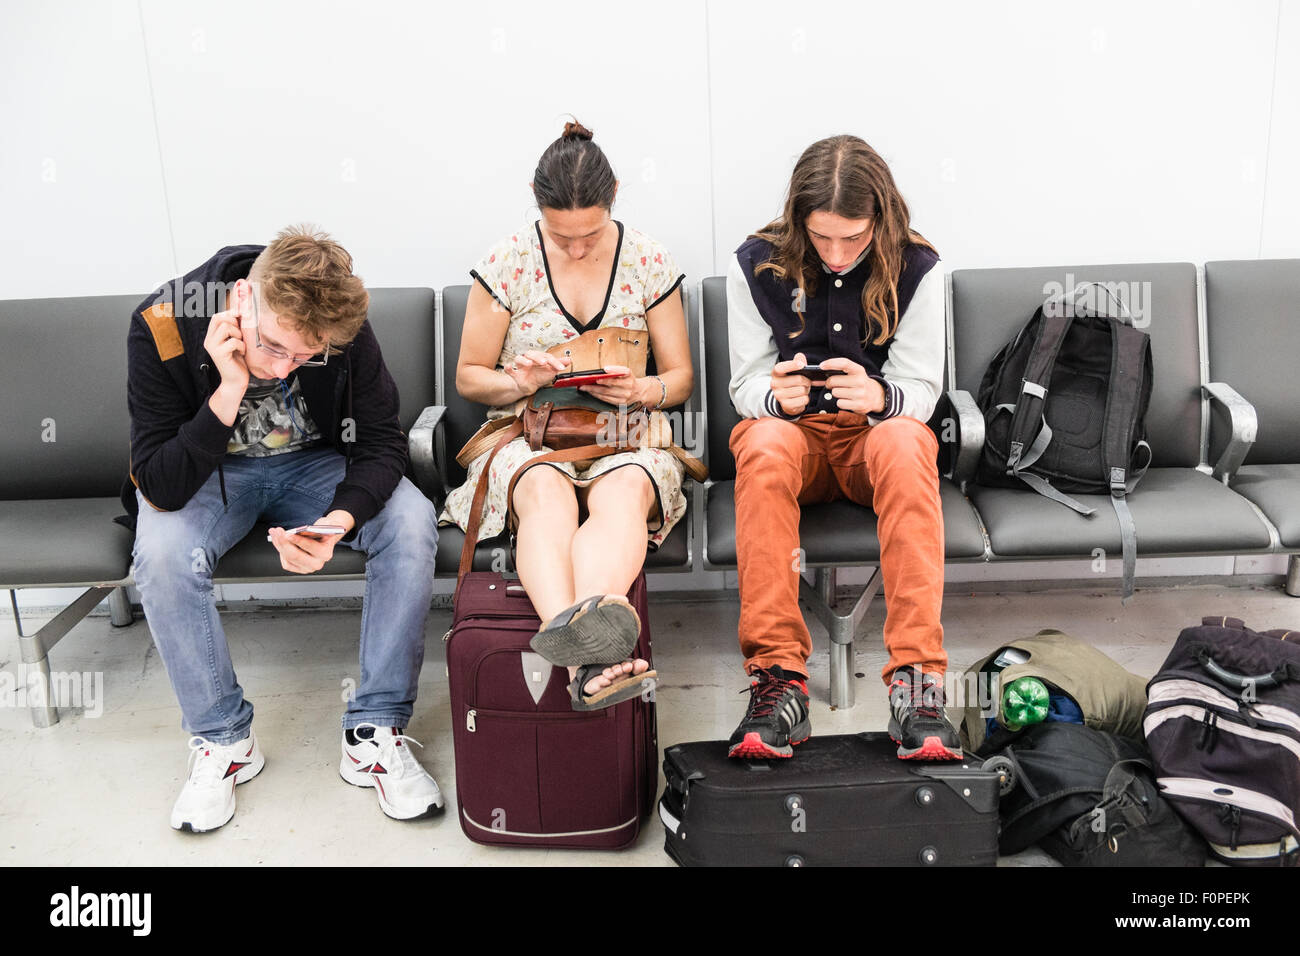 Passengers,travellers with carry on luggage checking their mobile ...